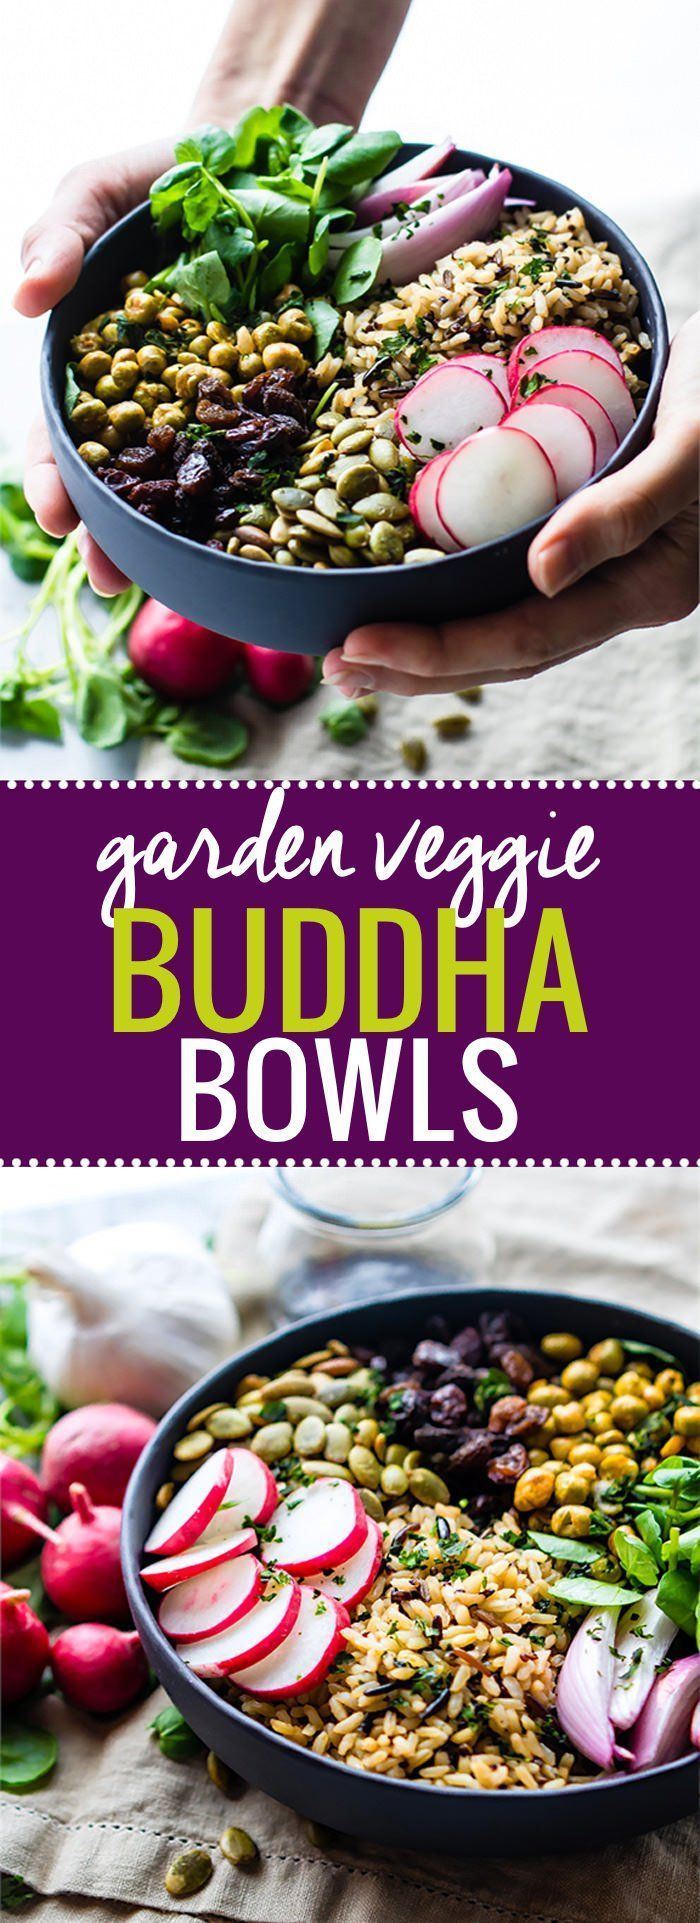 Nourishing Garden Veggie Vegan Buddha Bowl! This wholesome gluten free Buddha bowl recipe is filled with superfood ingredients that satisfy you and keep you healthy! /cottercrunch/